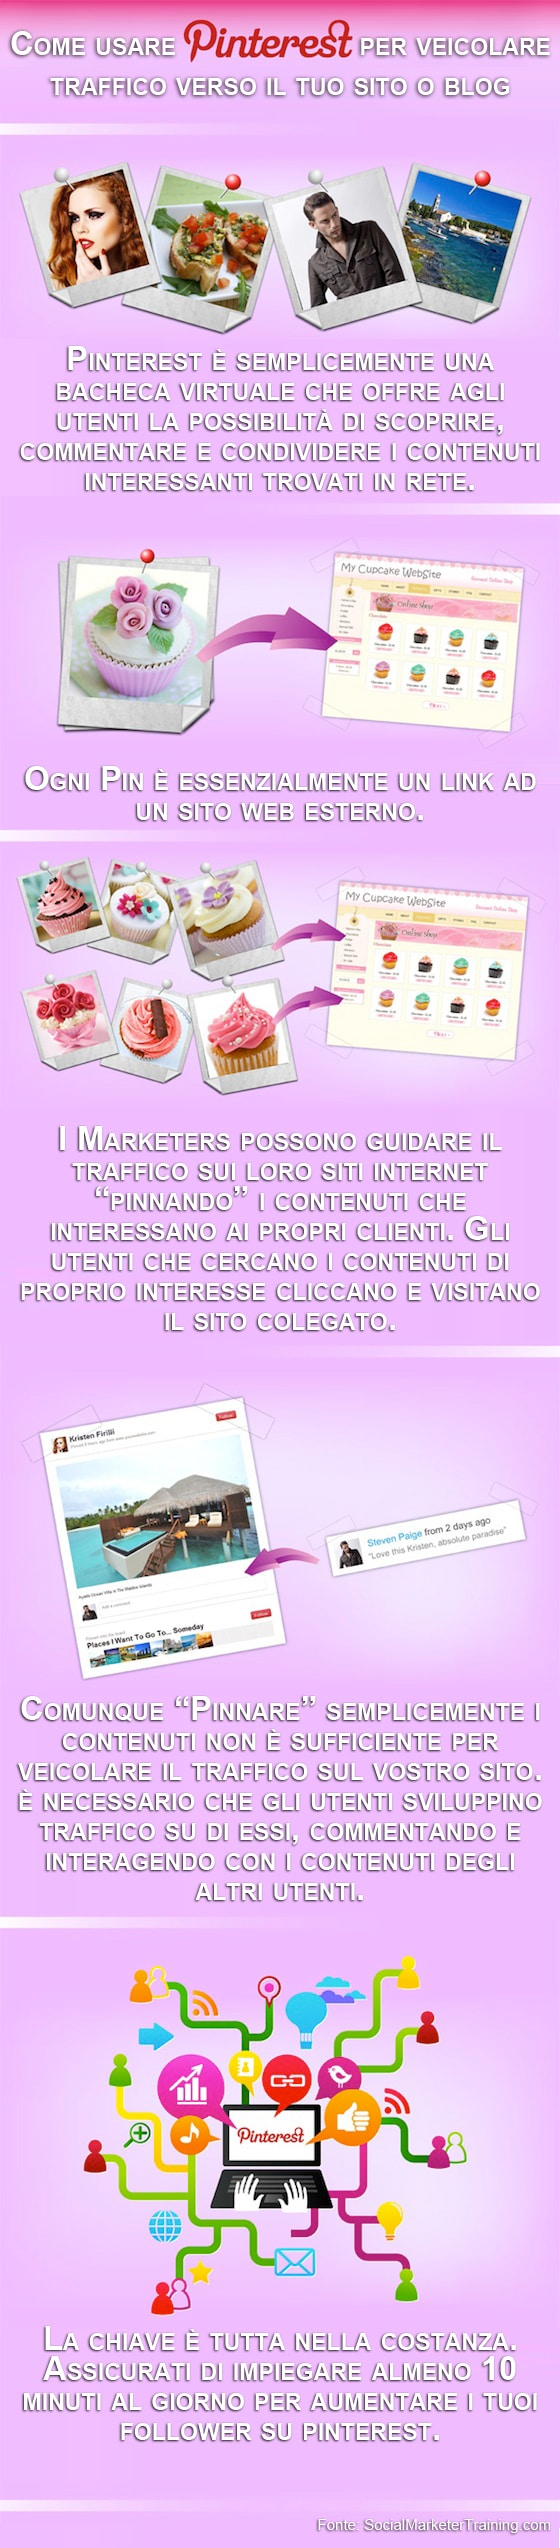 Pinterest-batte-Google-e-Twitter-nel-referral-traffic-Una-infografica-per-i-marketers-e-la-guida-al-social-network-ispirazionale3